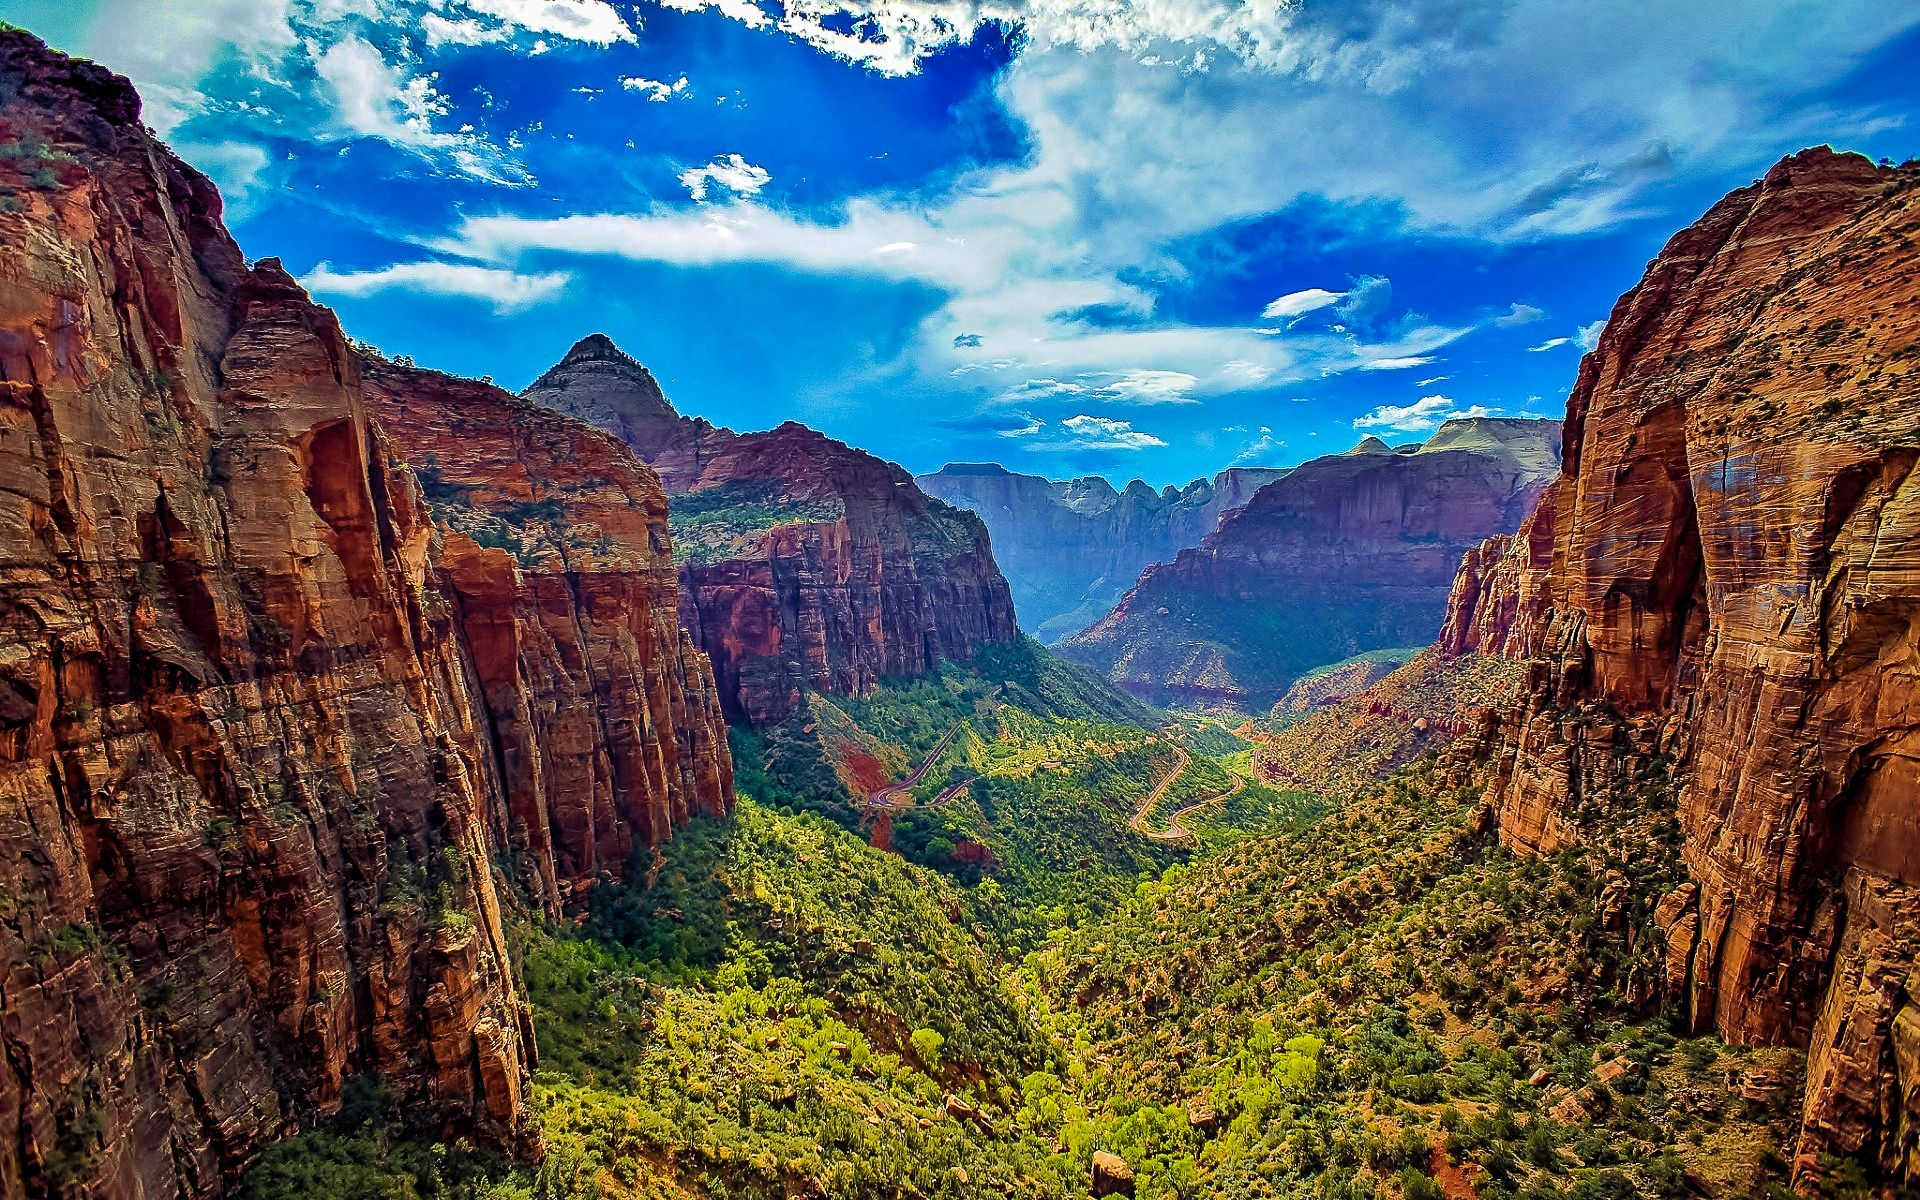 cabins spa hotel zion flanigans ut lodging inn activities park springdale make national room reservation a